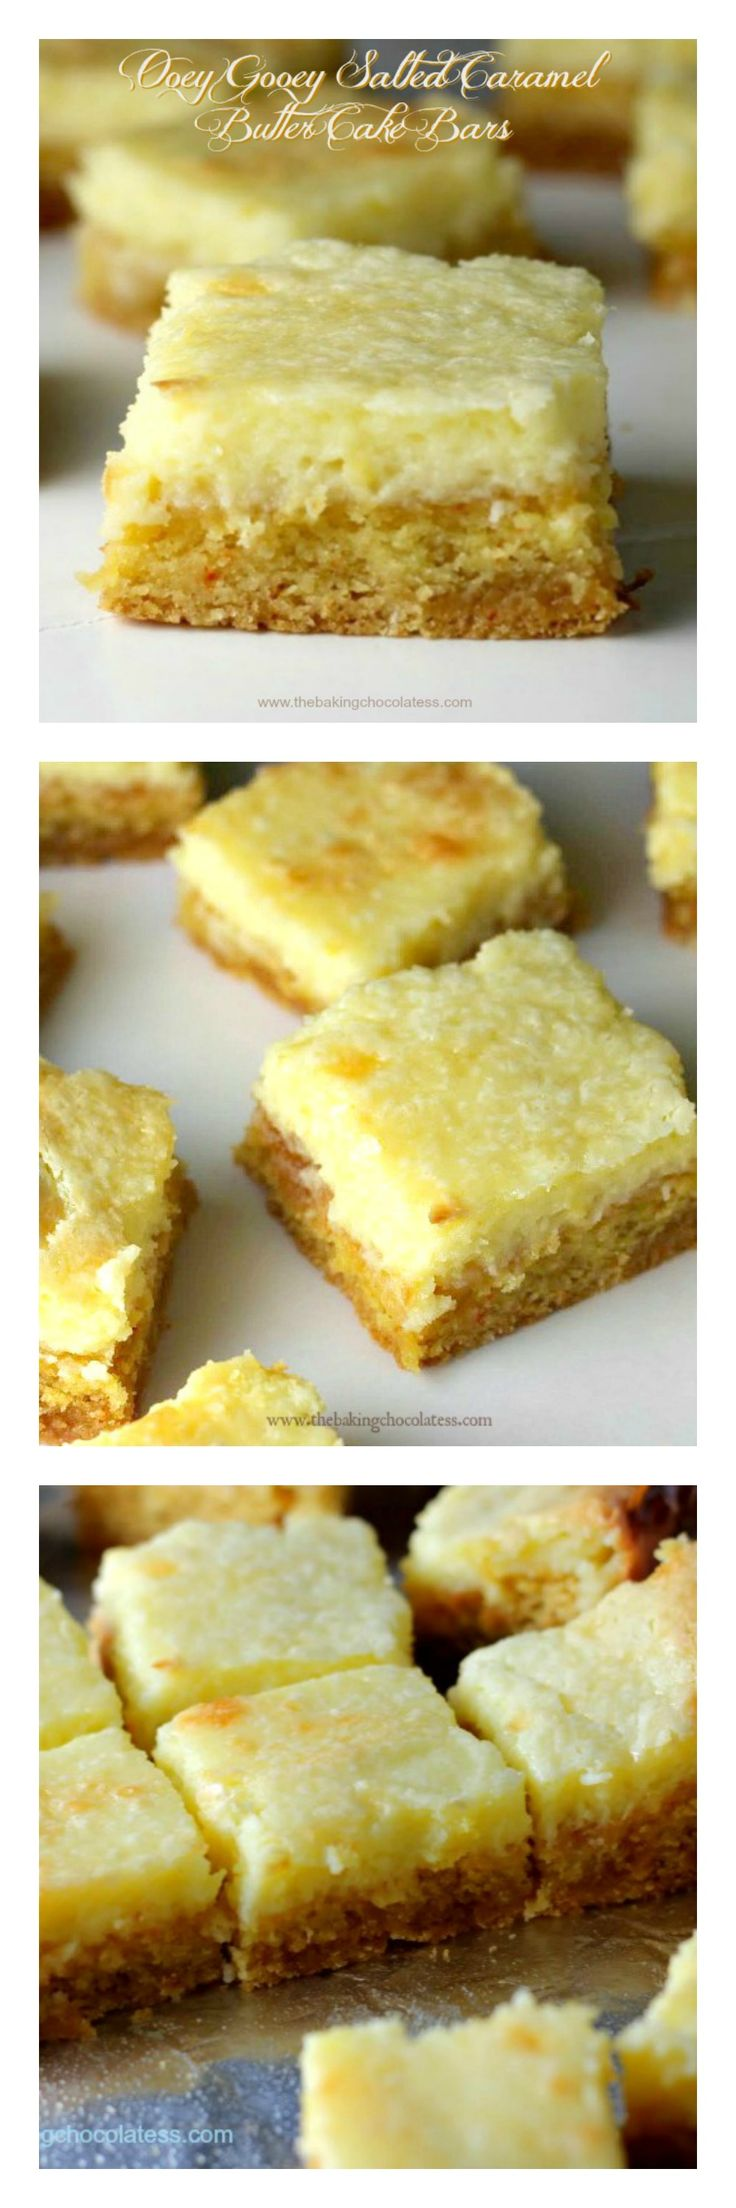 Use a gluten free cake mix to make Ooey Gooey Salted Caramel Butter Cake Bars.